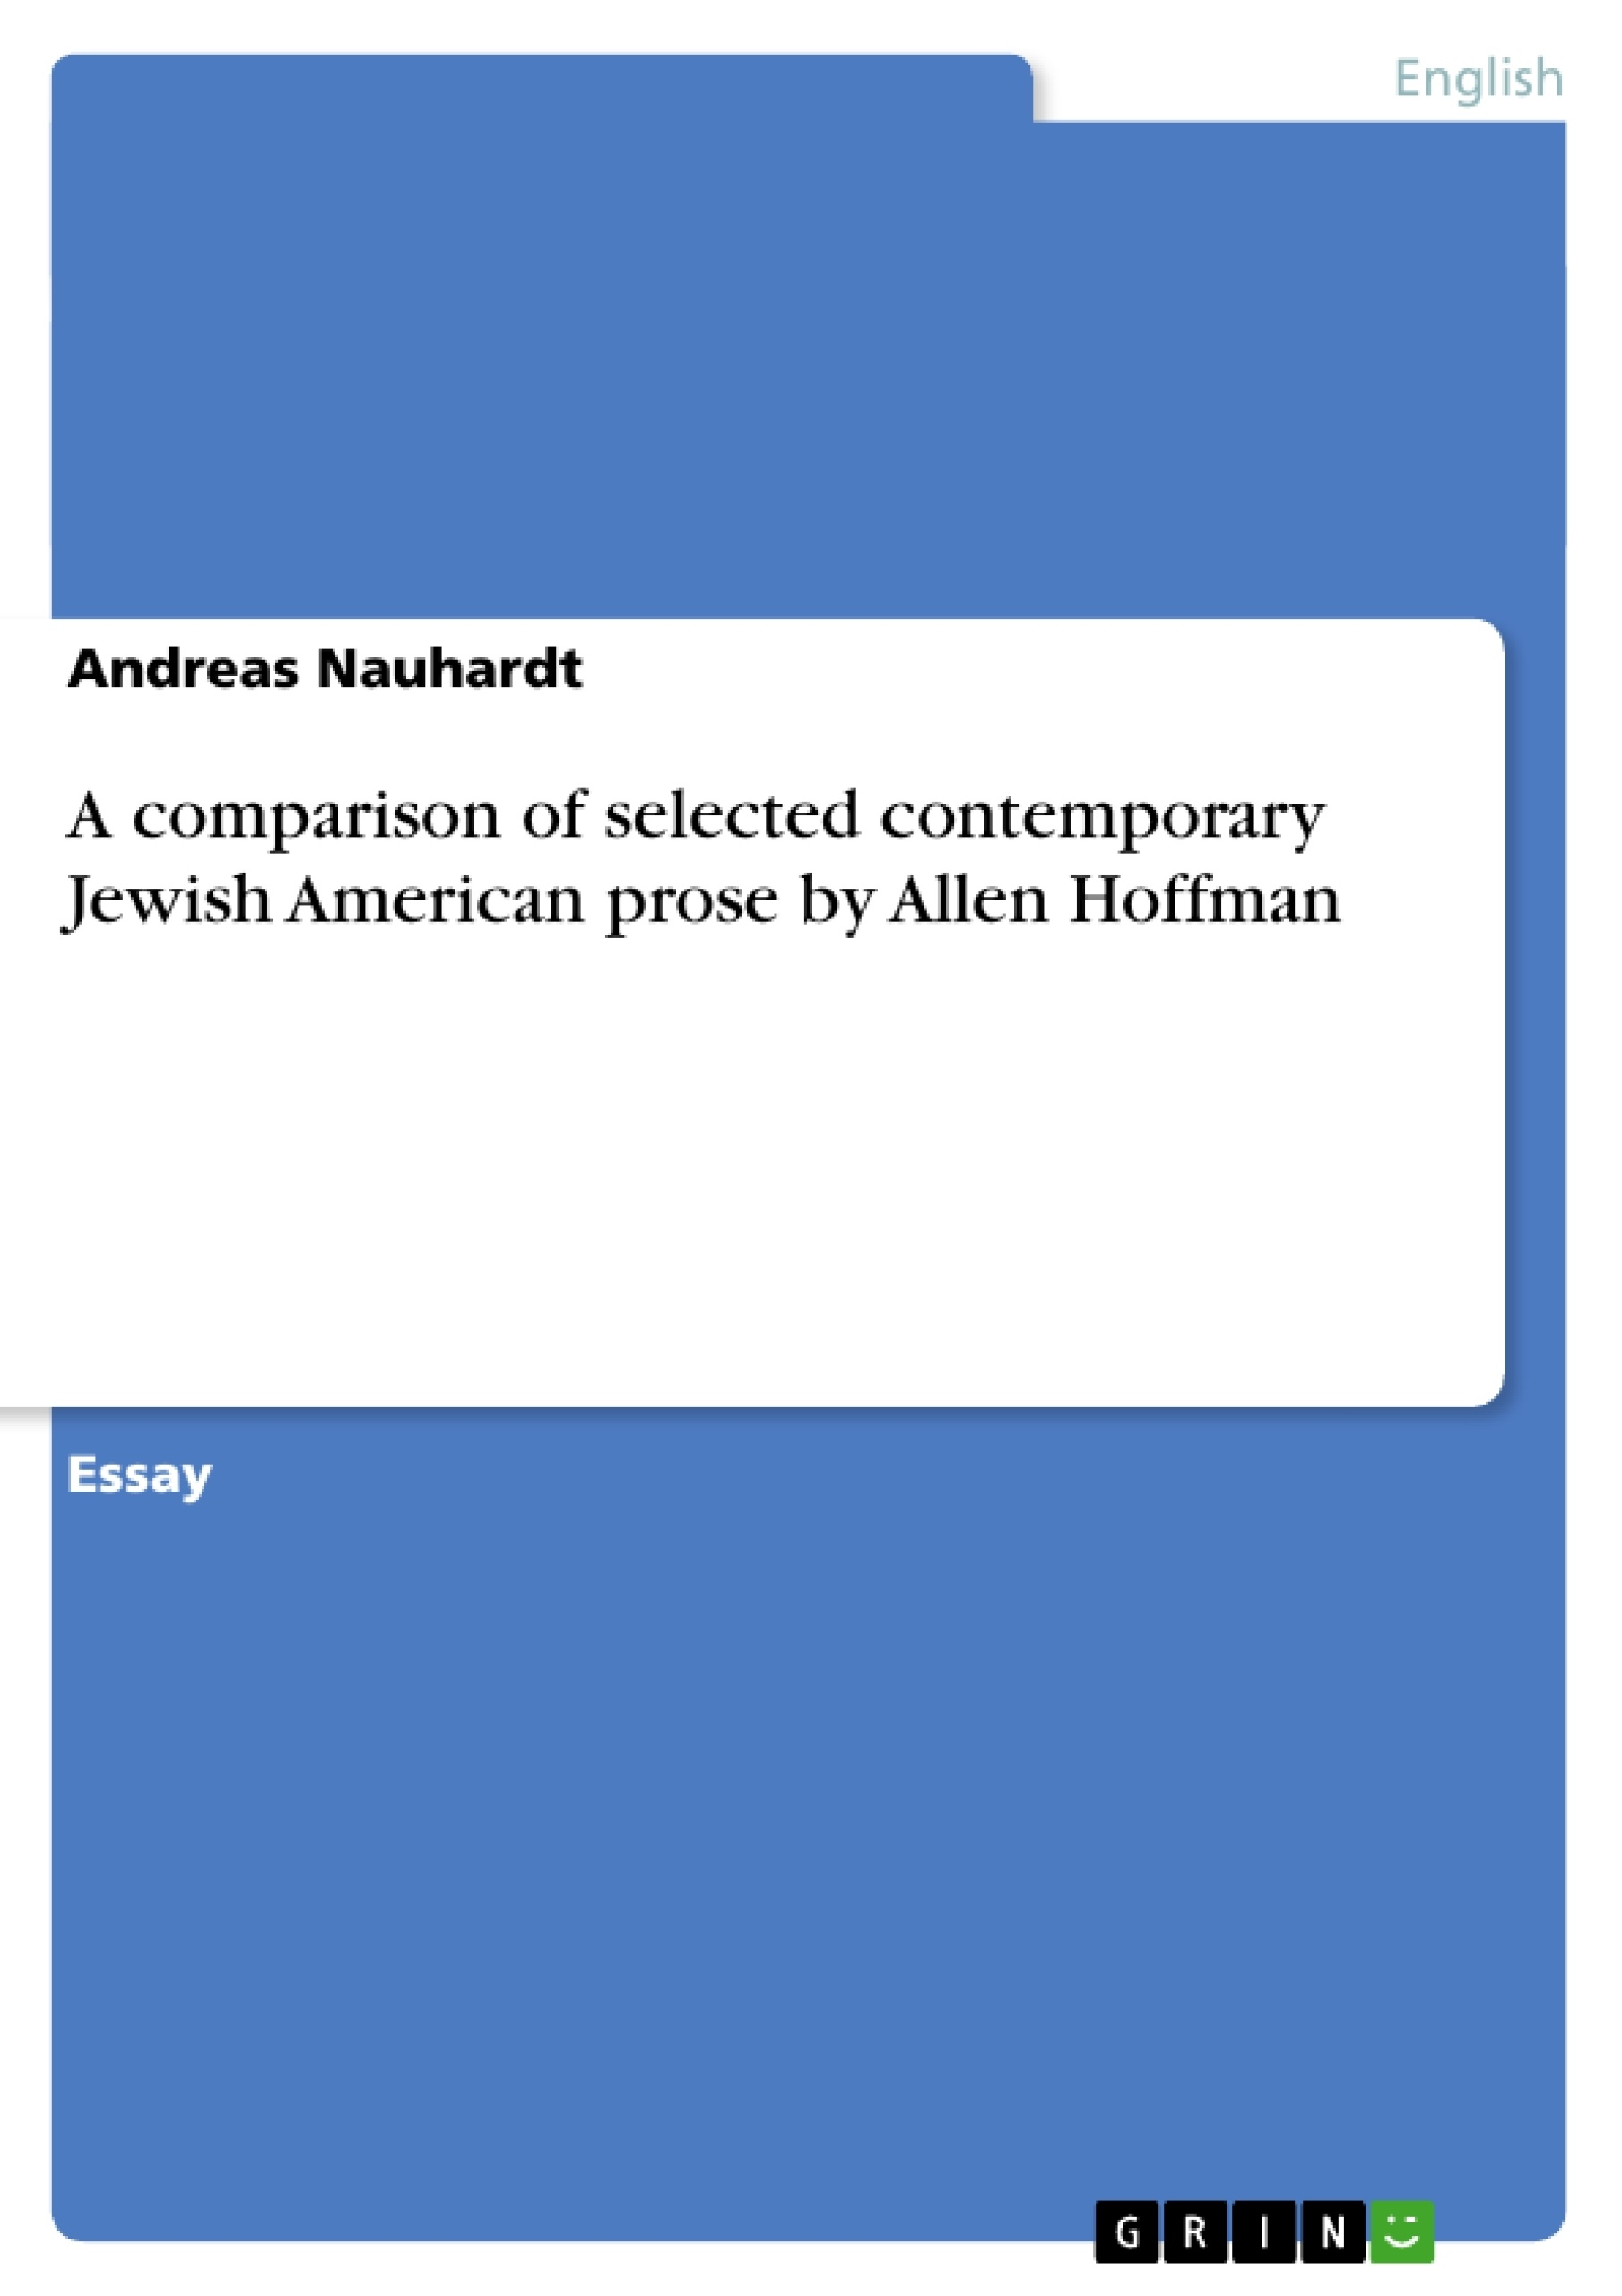 Title: A comparison of selected contemporary Jewish American prose by Allen Hoffman